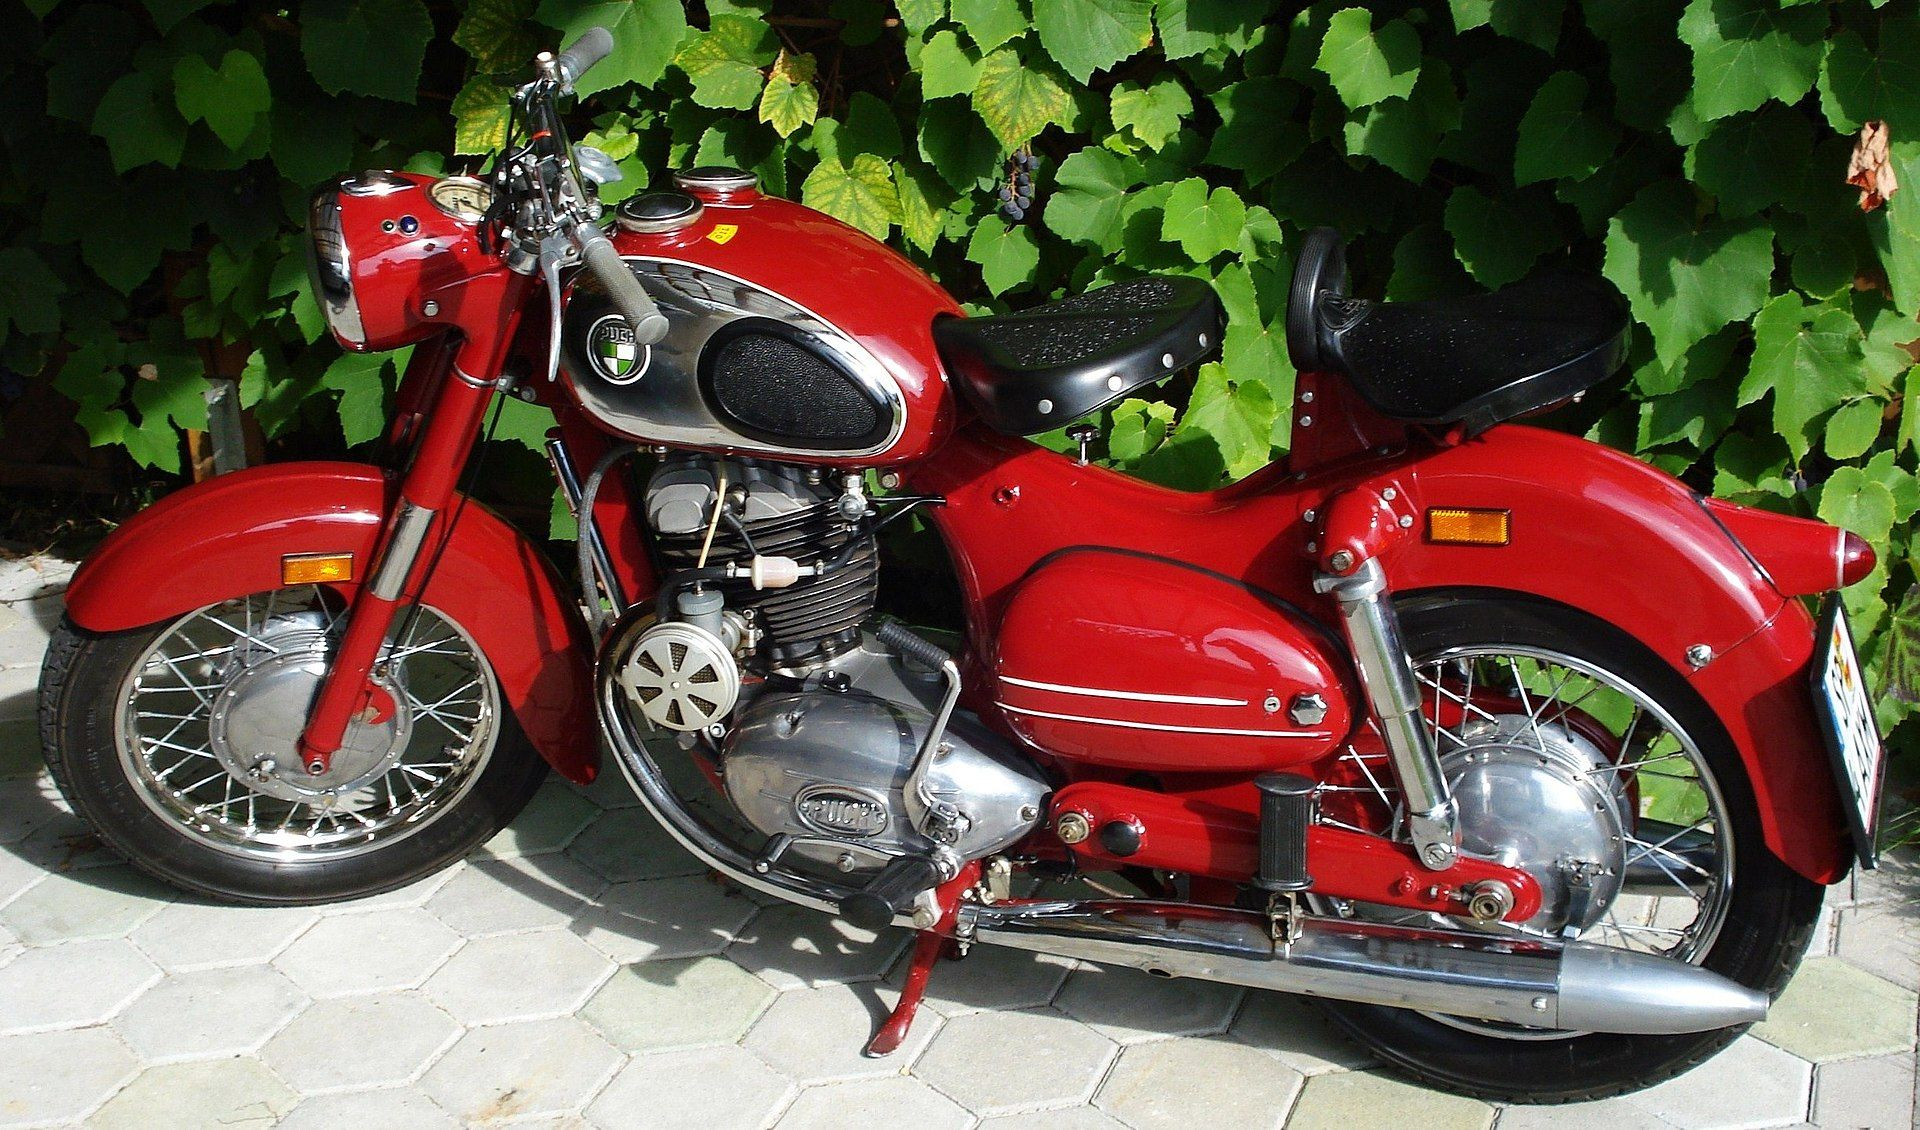 1954 Puch 250 Sgs Austria Classic Motorcycles Puch Old Bikes